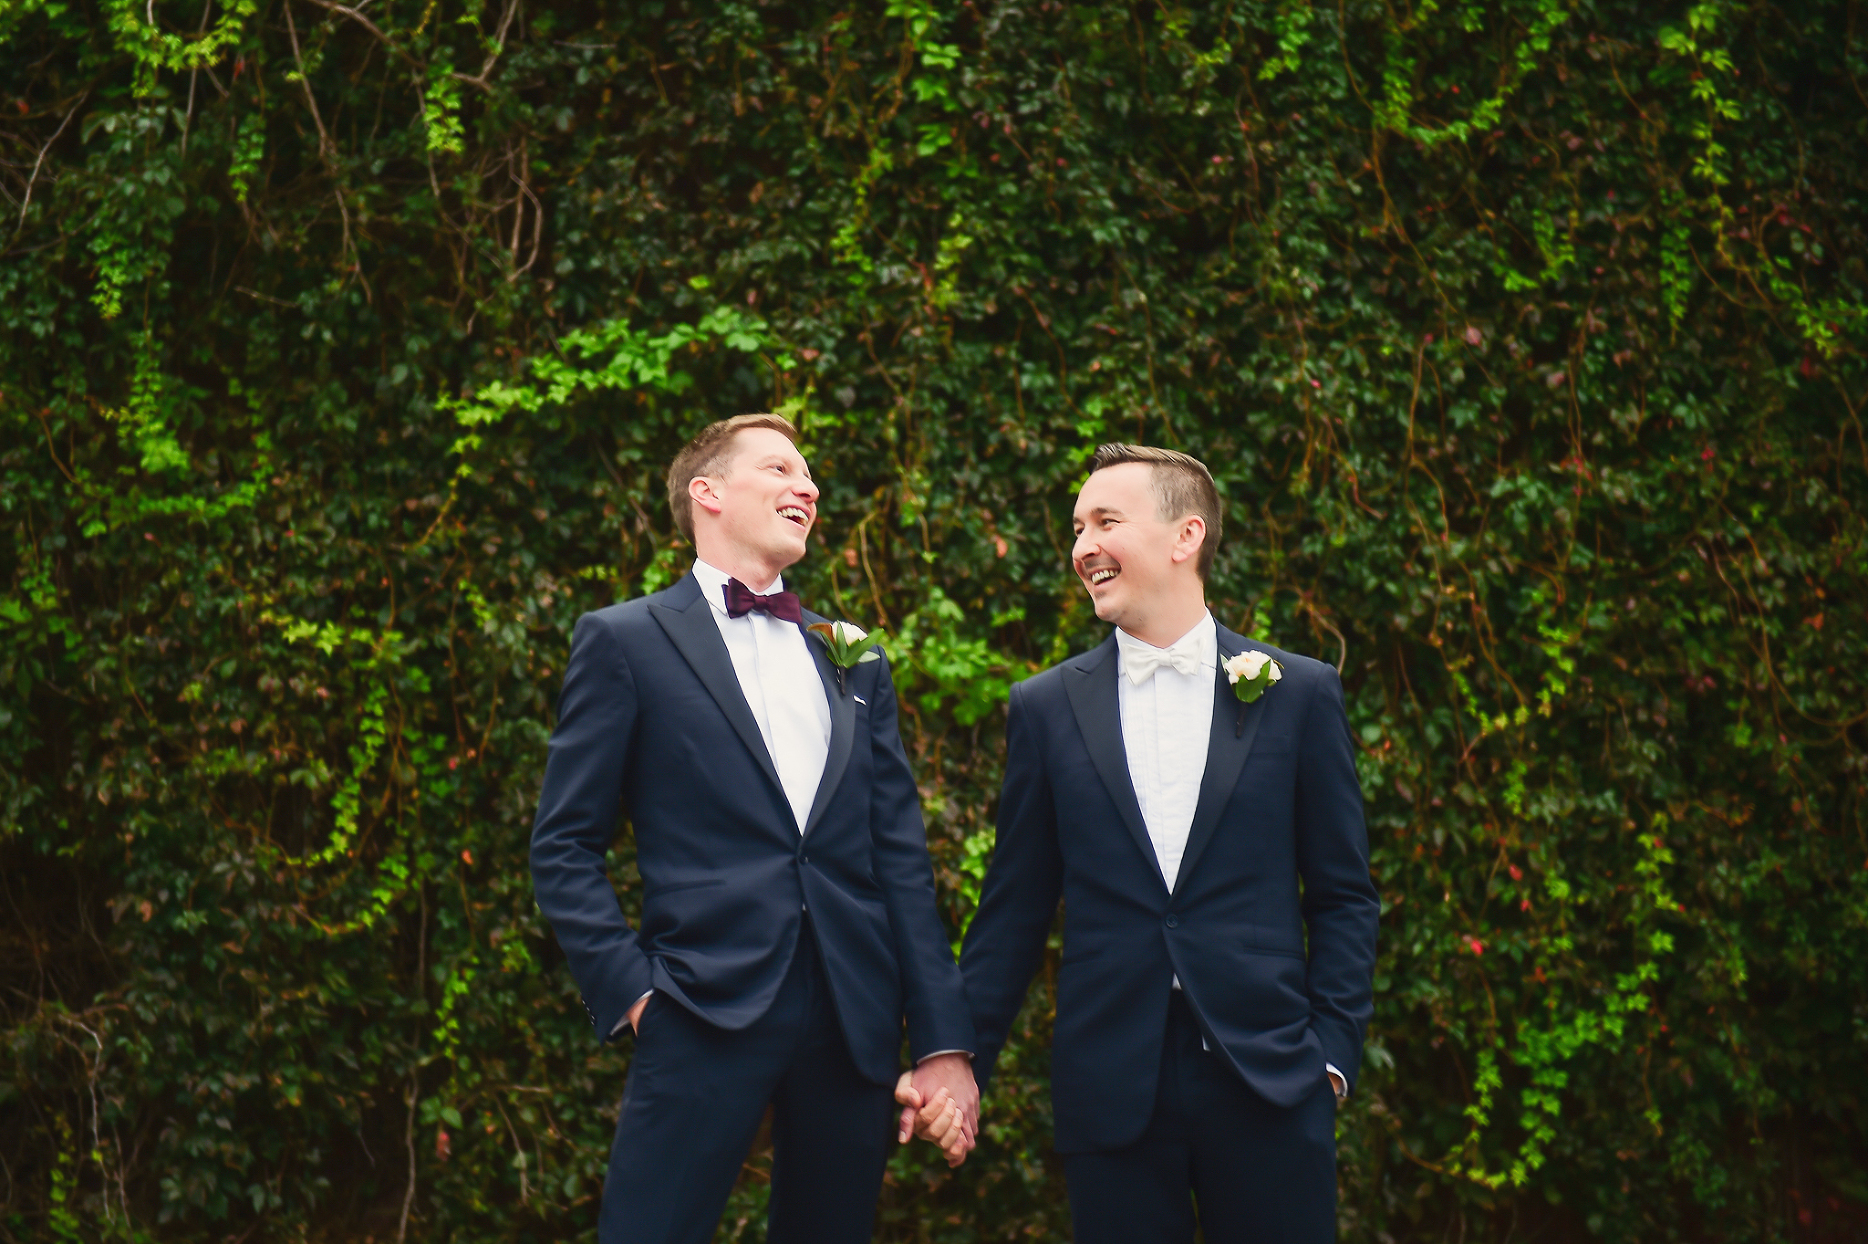 Matthew + Shawn | Senate Garage | Hudson Valley Wedding